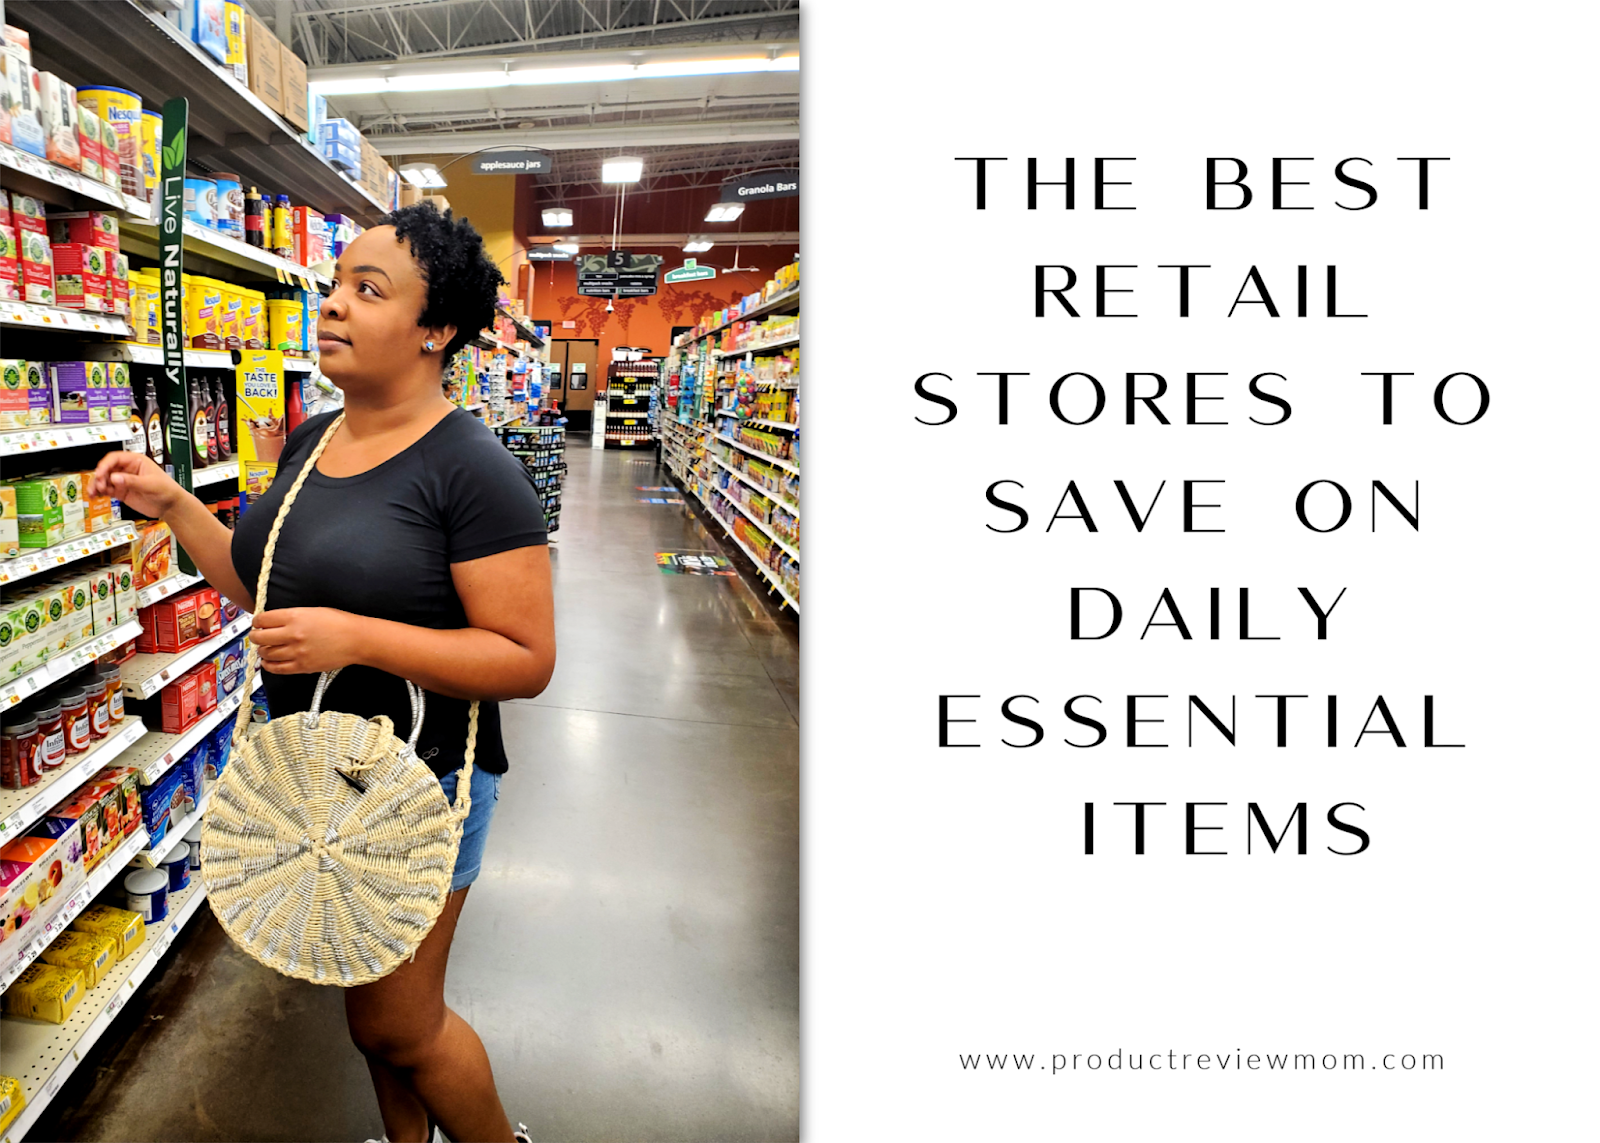 The Best Retail Stores to Save on Daily Essential Items